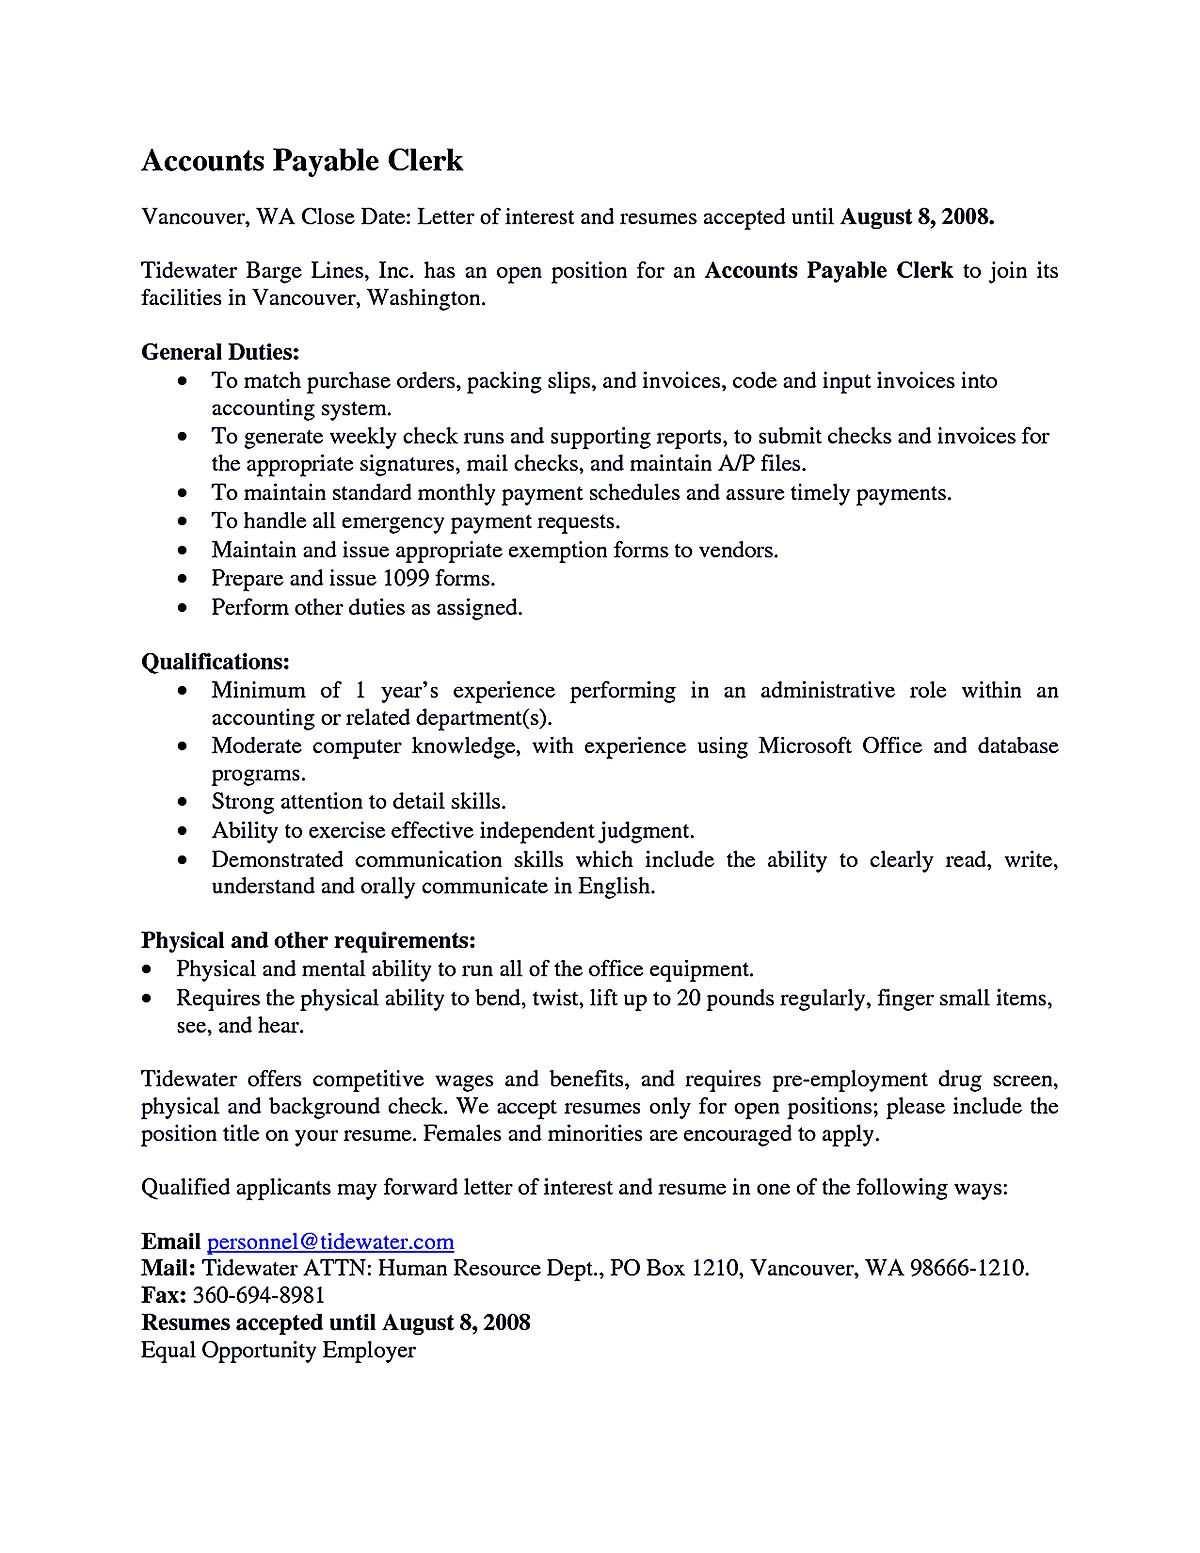 Account Receivable Resume Shows Both Technical And Interpersonal Skills You Have Your Professional S Resume Skills Sample Resume Templates Job Resume Examples